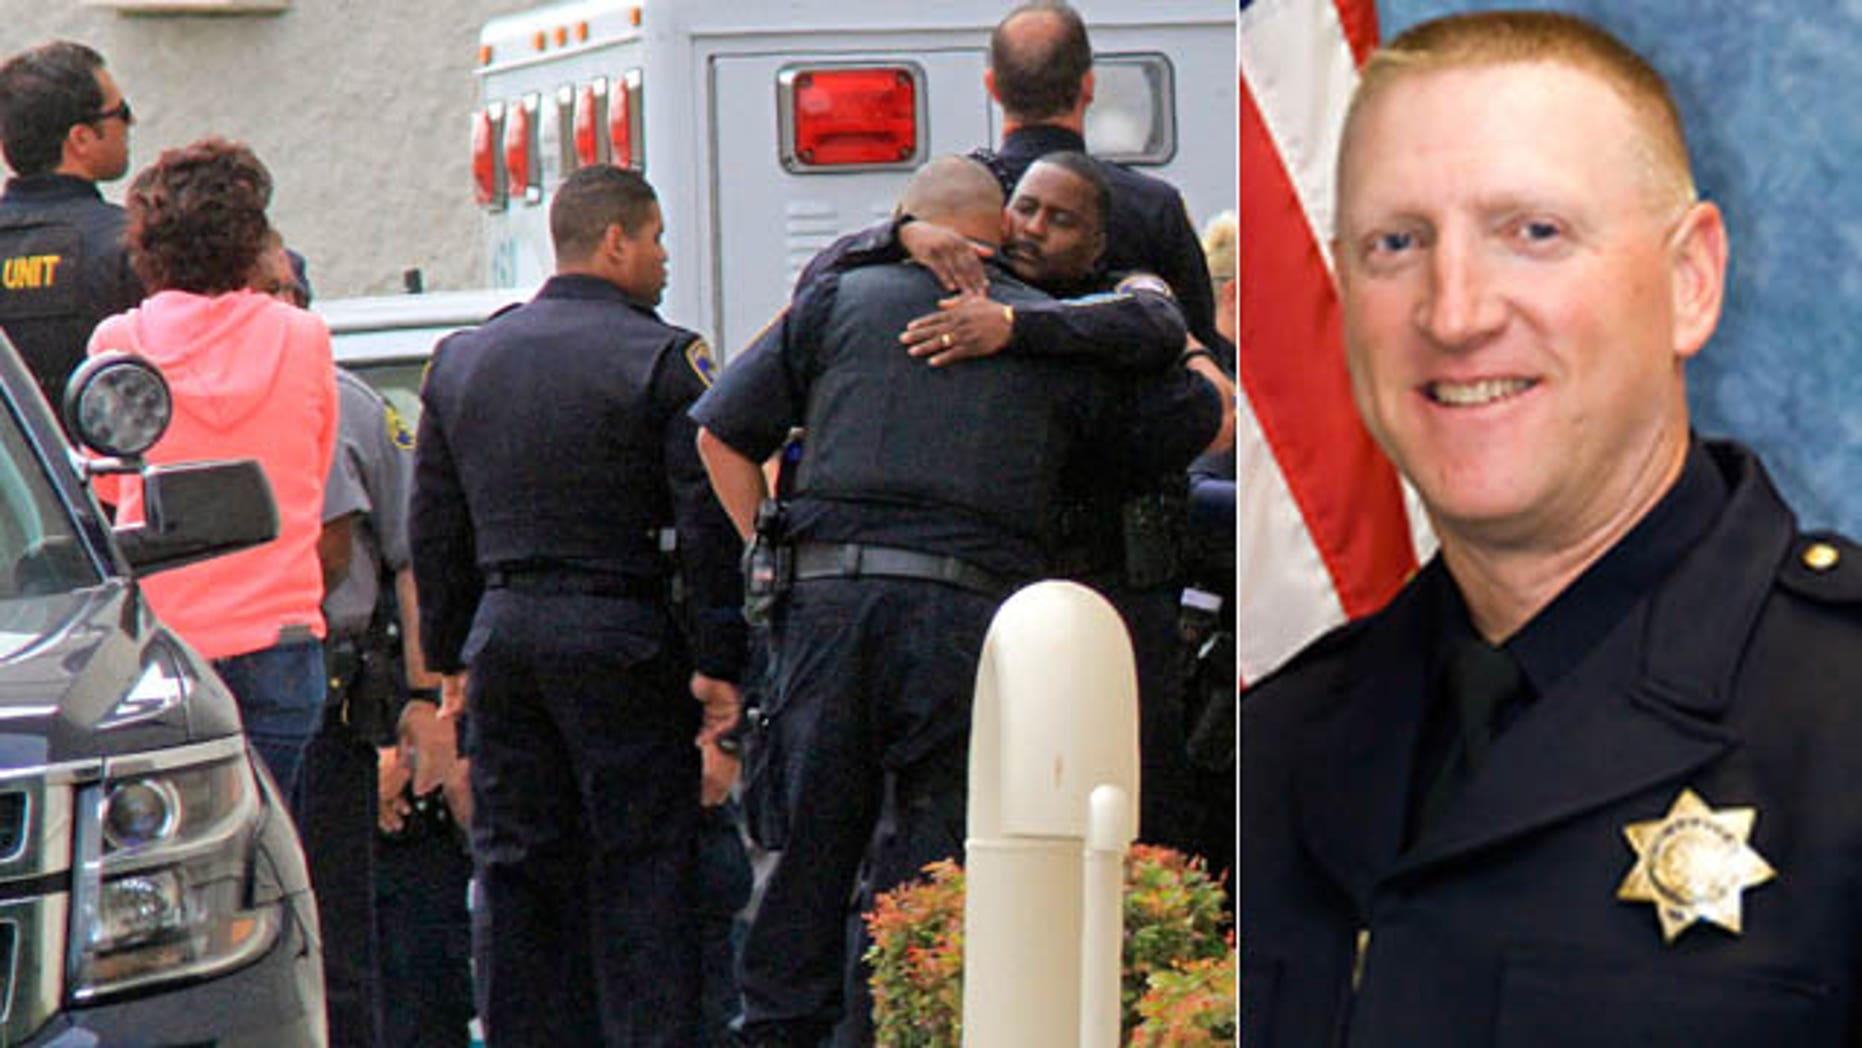 July 22, 2015: Law enforcement members gather at Eden Medical Center in Castro Valley, Calif.,where Hayward Police Sgt. Scott Lunger, right, was transported after being shot and killed during a traffic stop. Lunger, 48, was shot in the early morning after he stopped a white Chevrolet pickup that was swerving on the road and driving erratically. (Laura A. Oda/Bay Area News Group via AP)